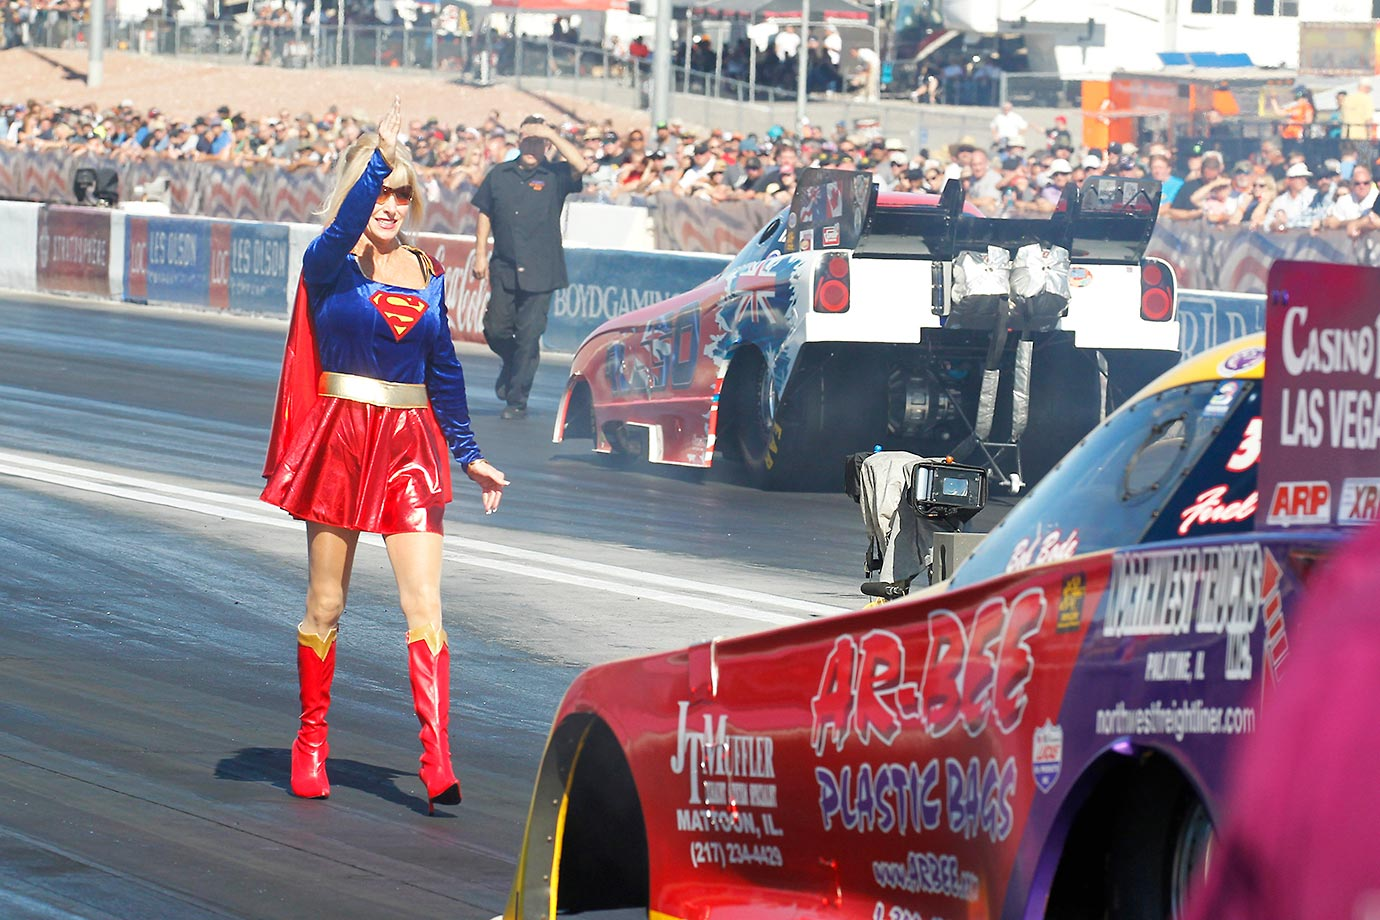 Superwoman backs up Bob Bode at the NHRA Funny Car 15th Annual Toyota Nationals in Las Vegas.